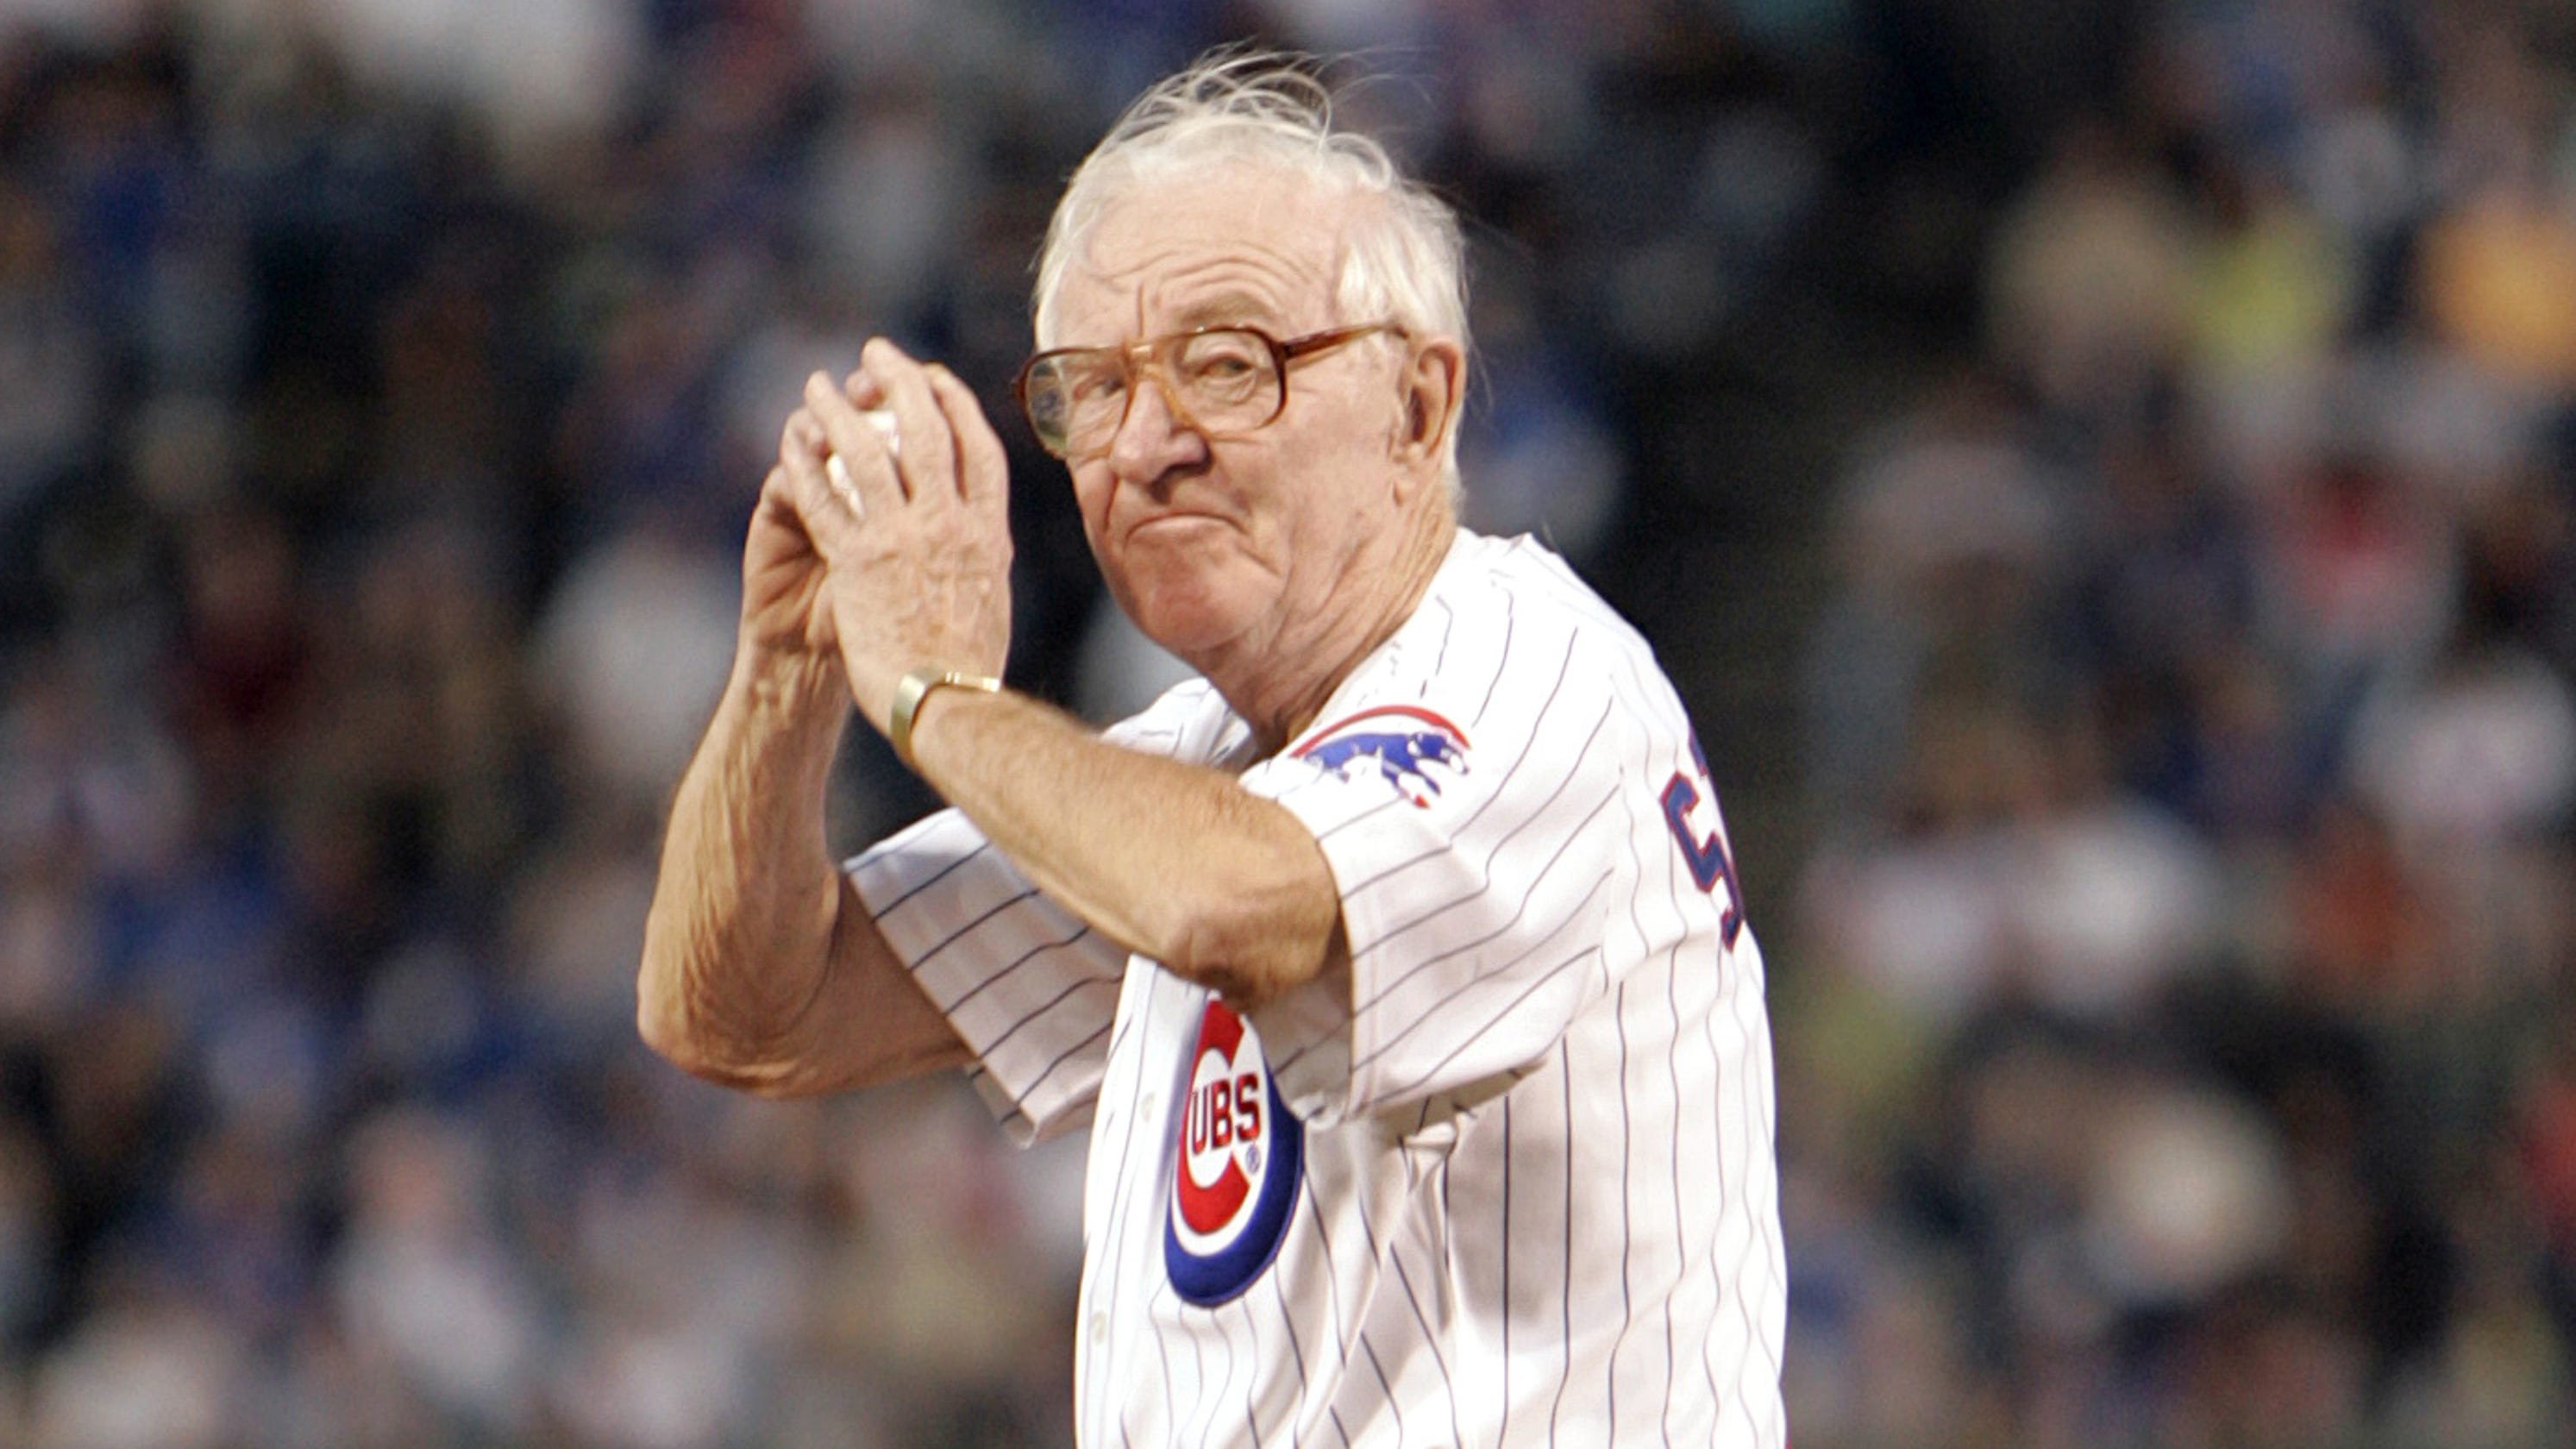 Former Supreme Court Justice John Paul Stevens watched Babe Ruth call shot in 1932 World Series